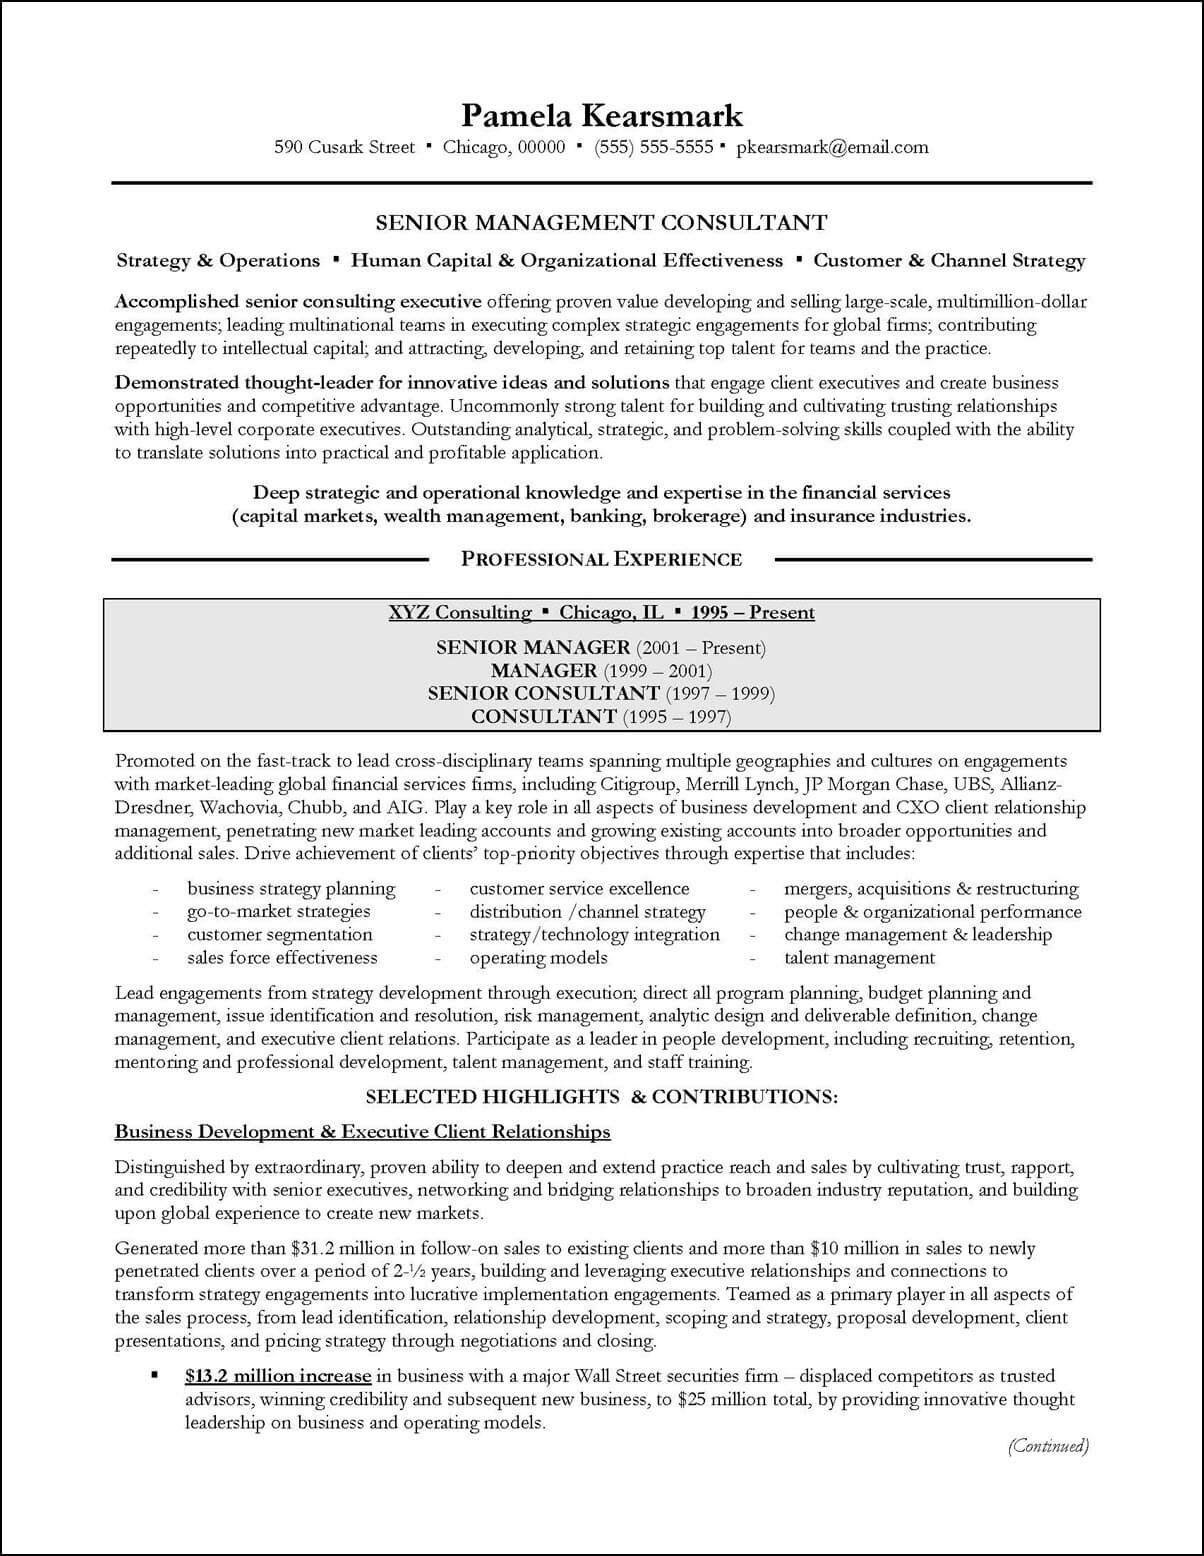 Management Consulting Resume Example Page 1 | Resume Examples ...